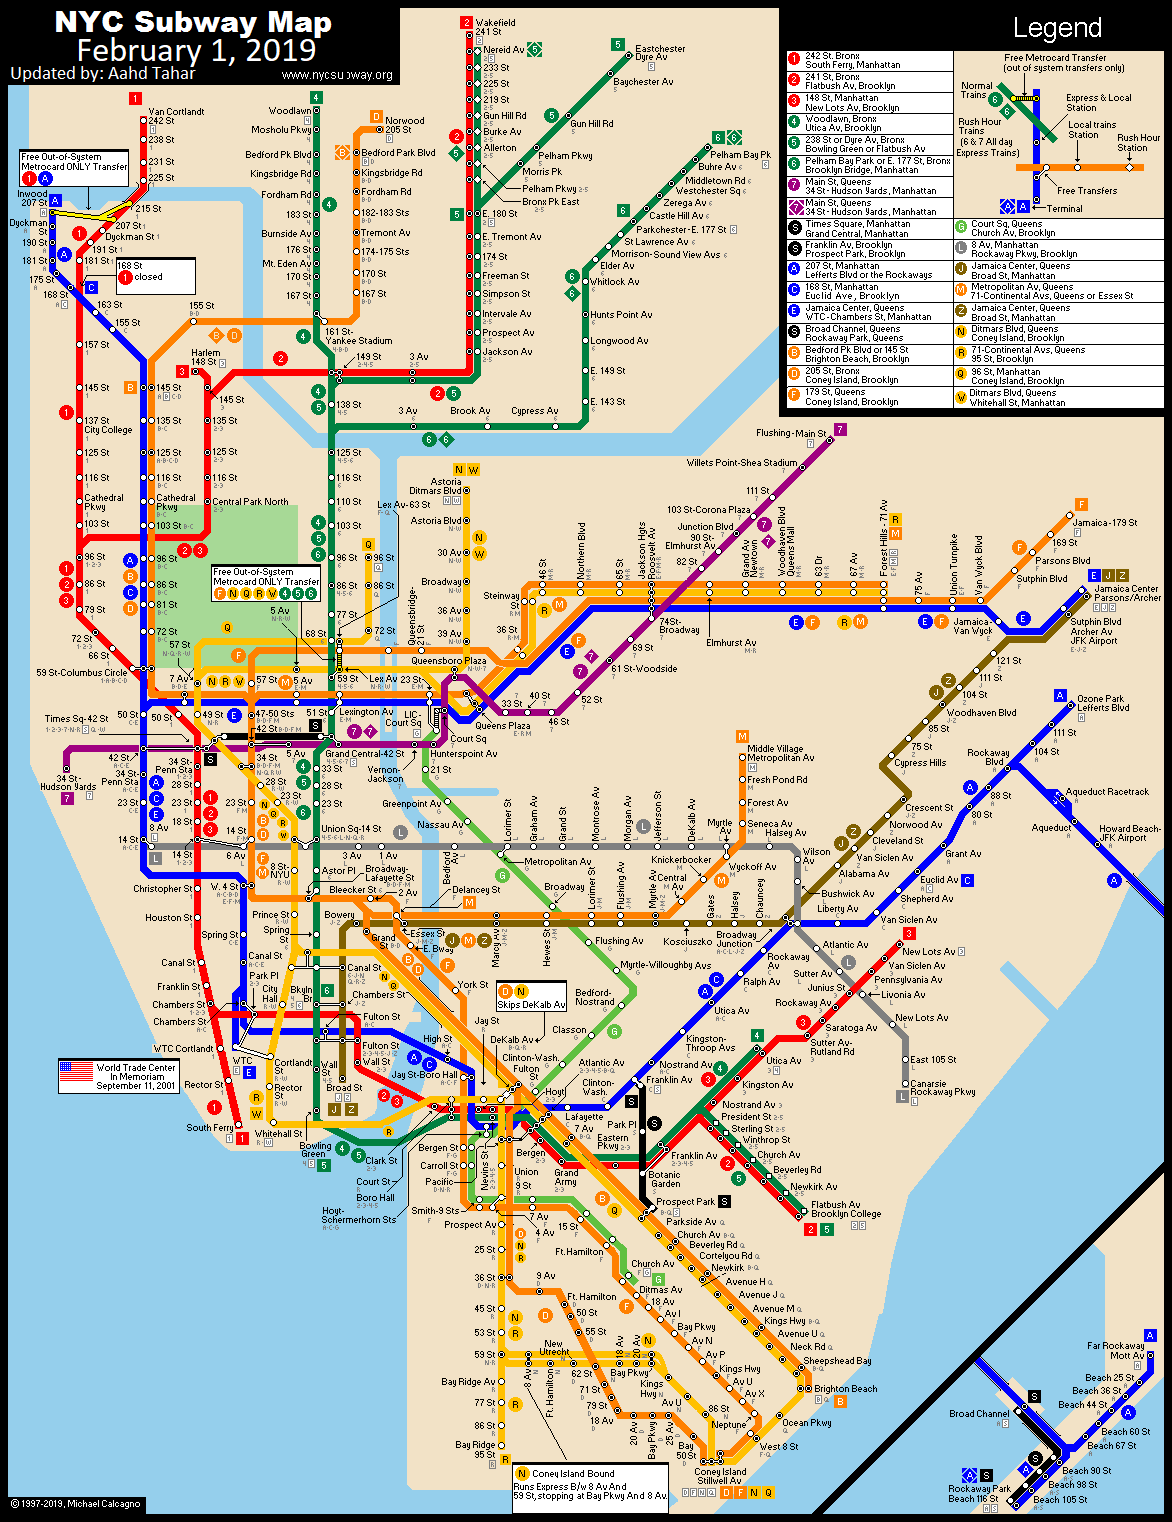 Real Subway Map Nyc.Www Nycsubway Org New York City Subway Route Map By Michael Calcagno